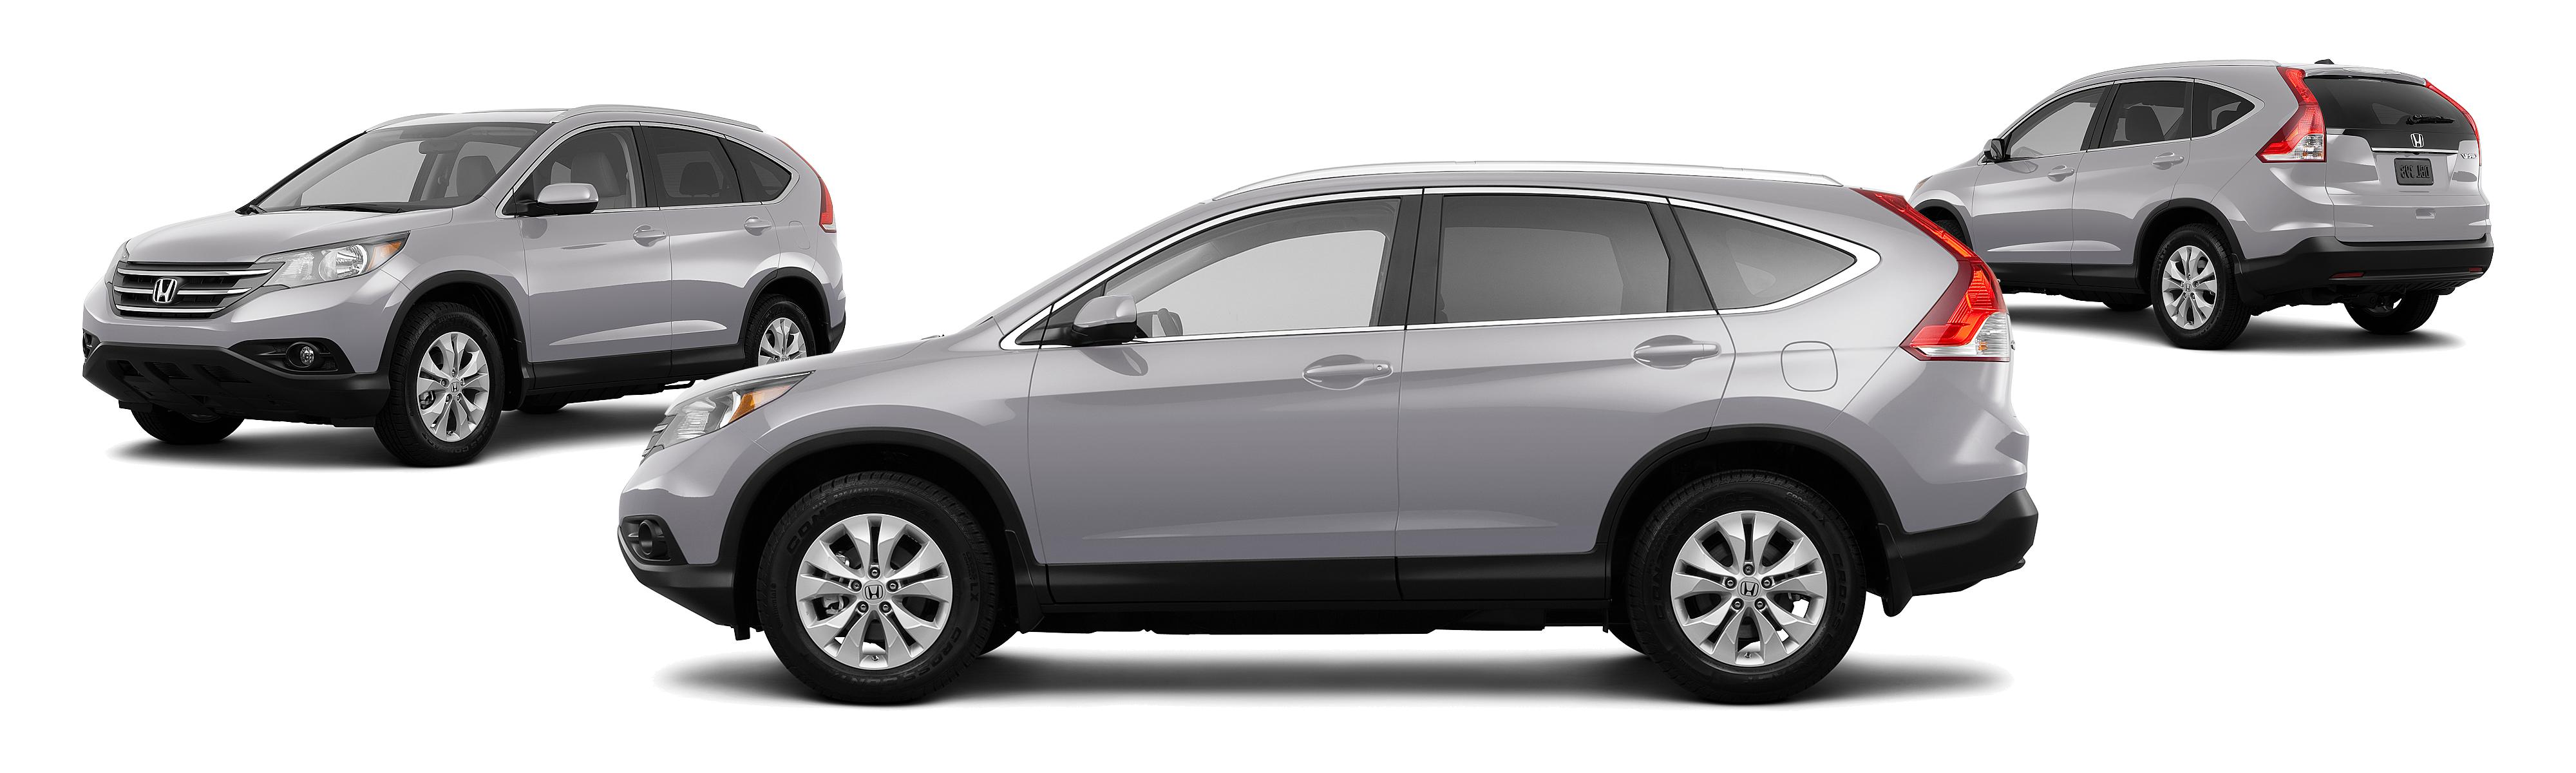 news value functionality honda package l v remarkable features right ex sized awd in cr release efficiency combines and crv en rightsized